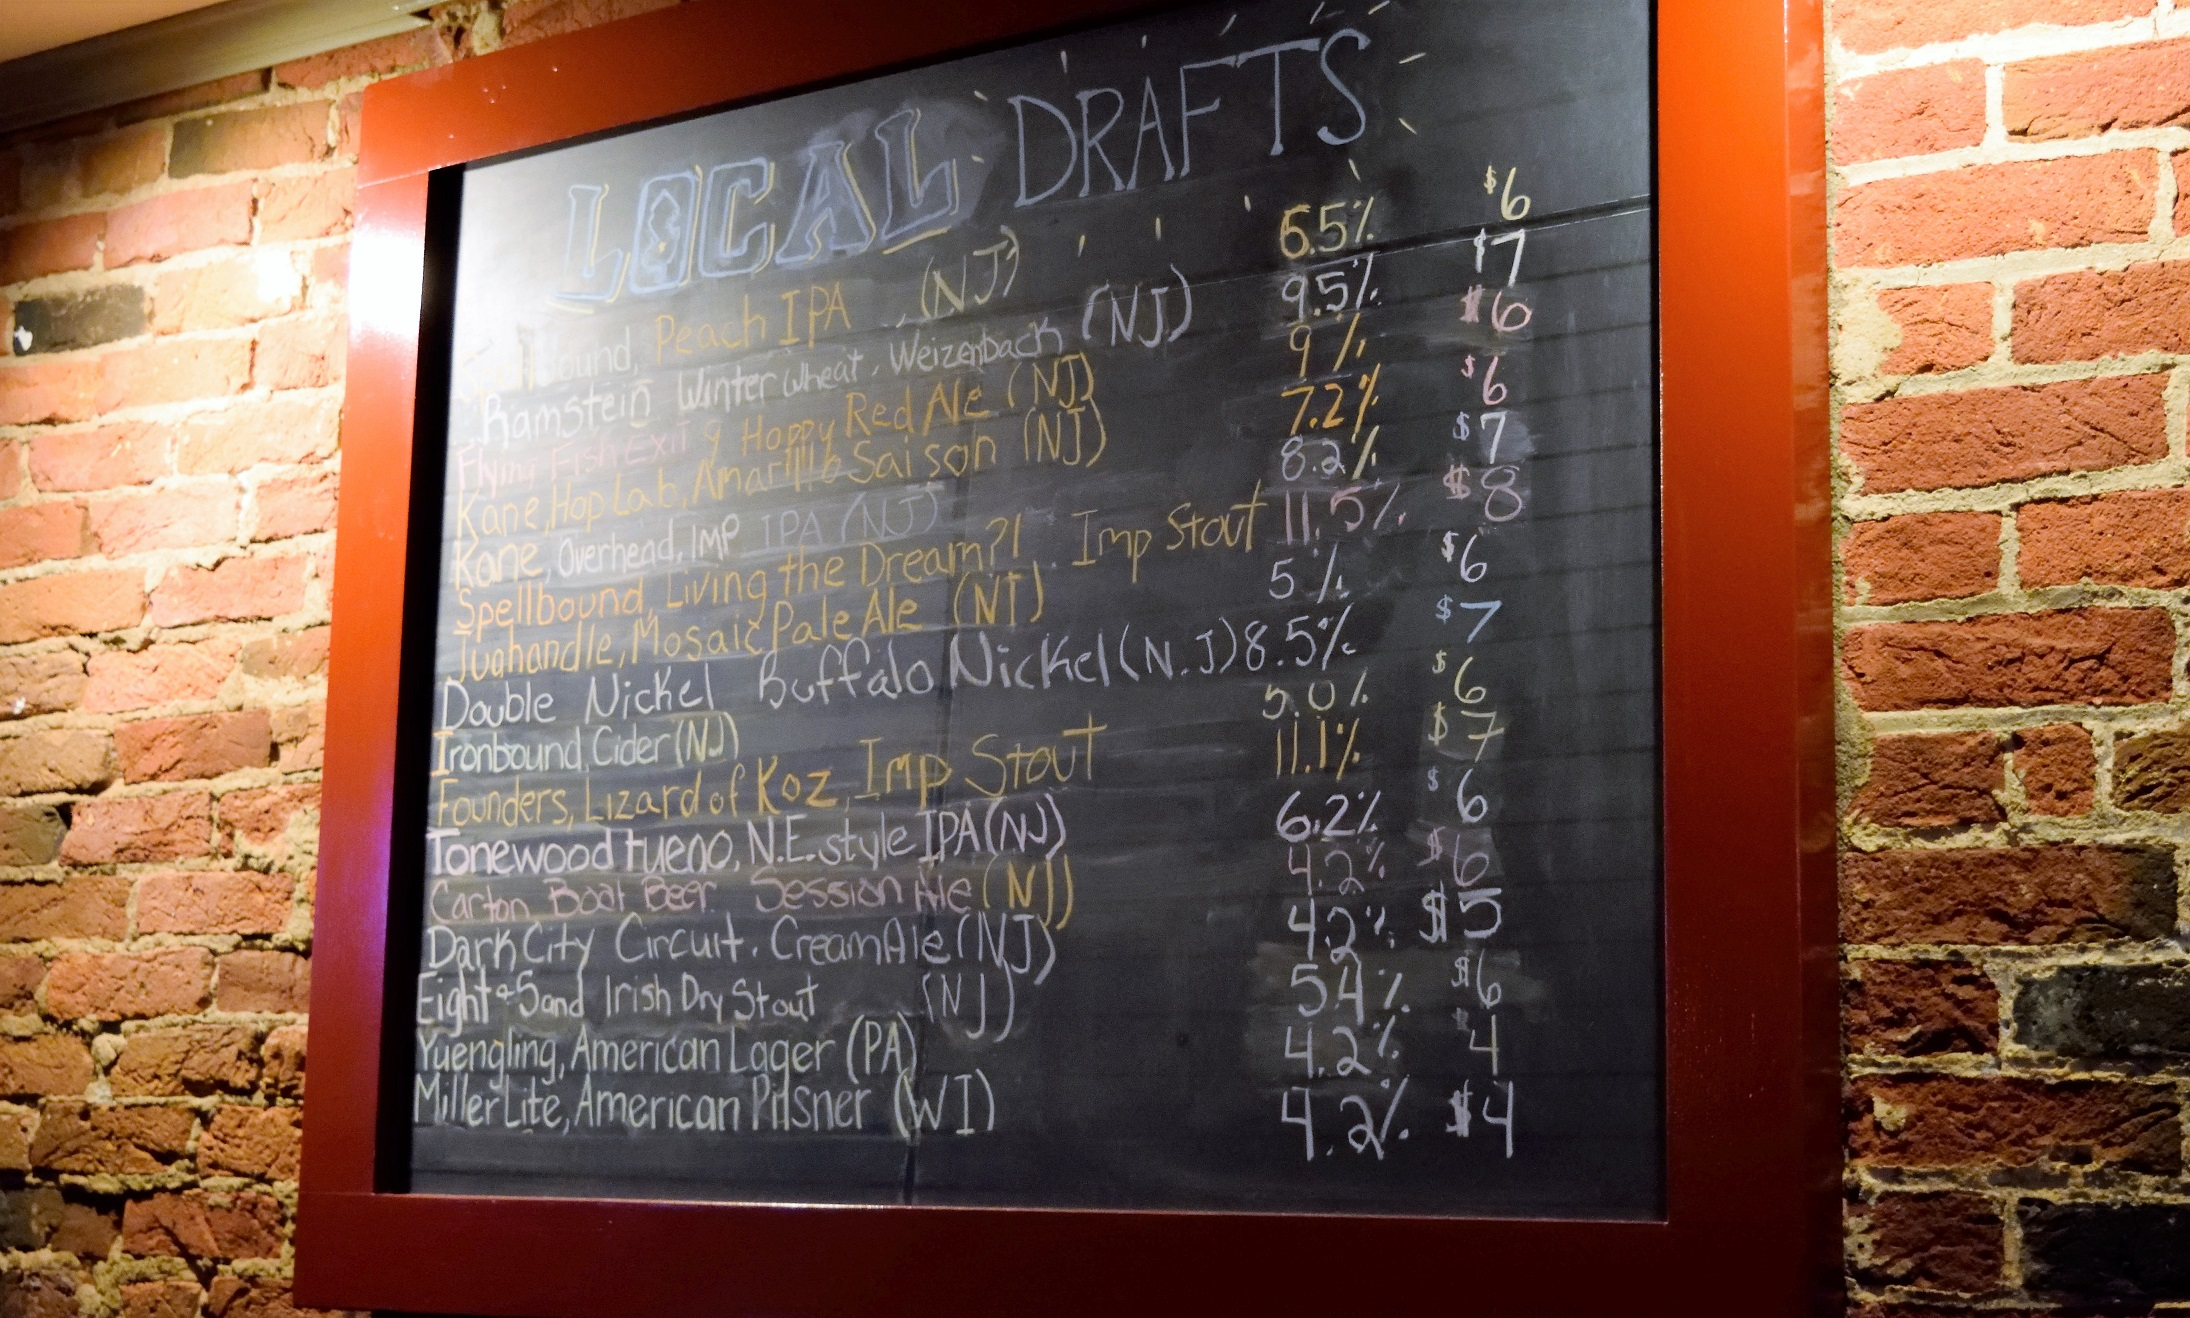 ...oh yeah, tap list looks really good.